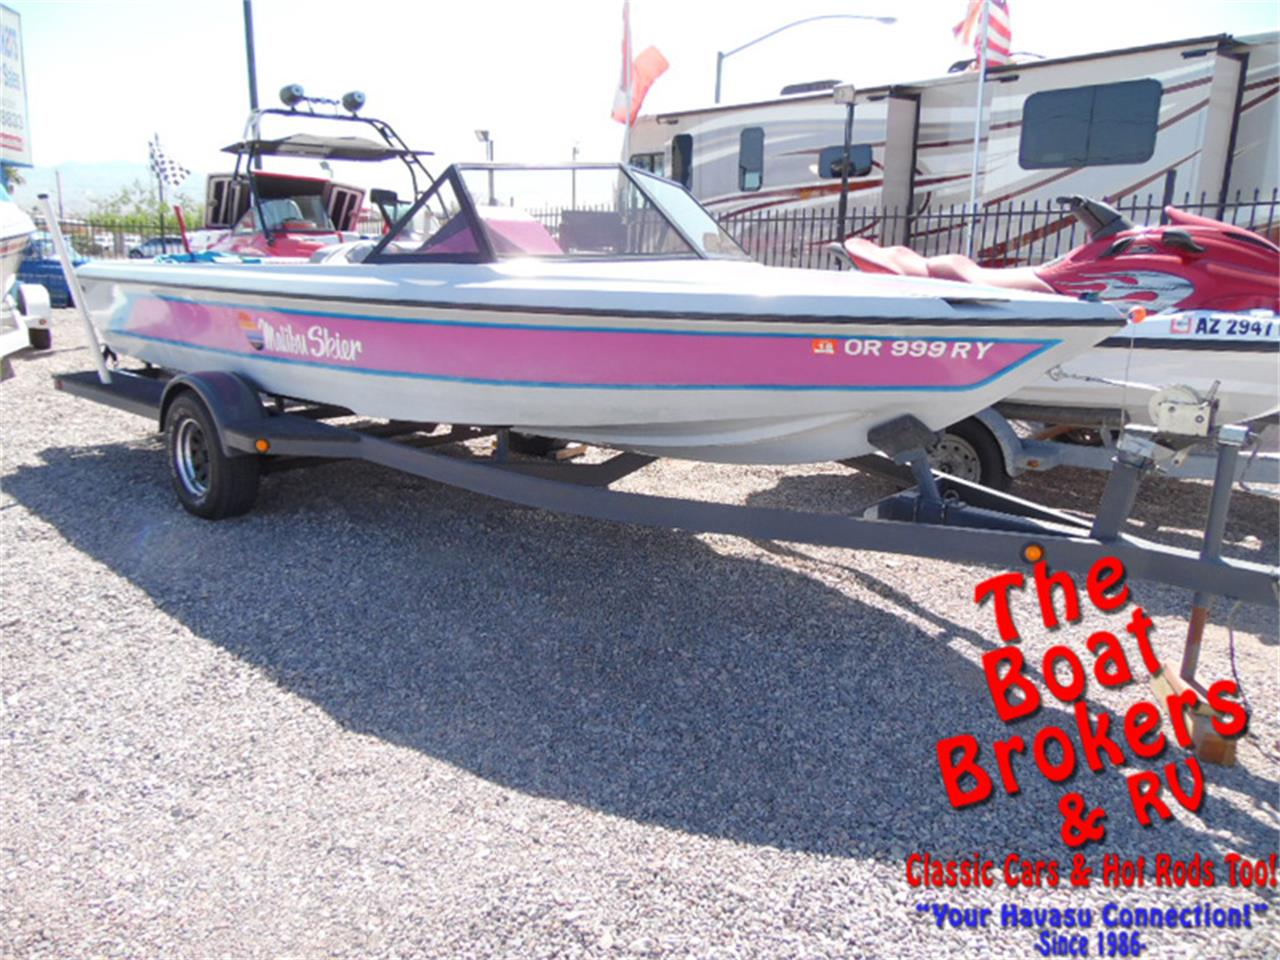 1988 Miscellaneous Boat for sale in Lake Havasu, AZ